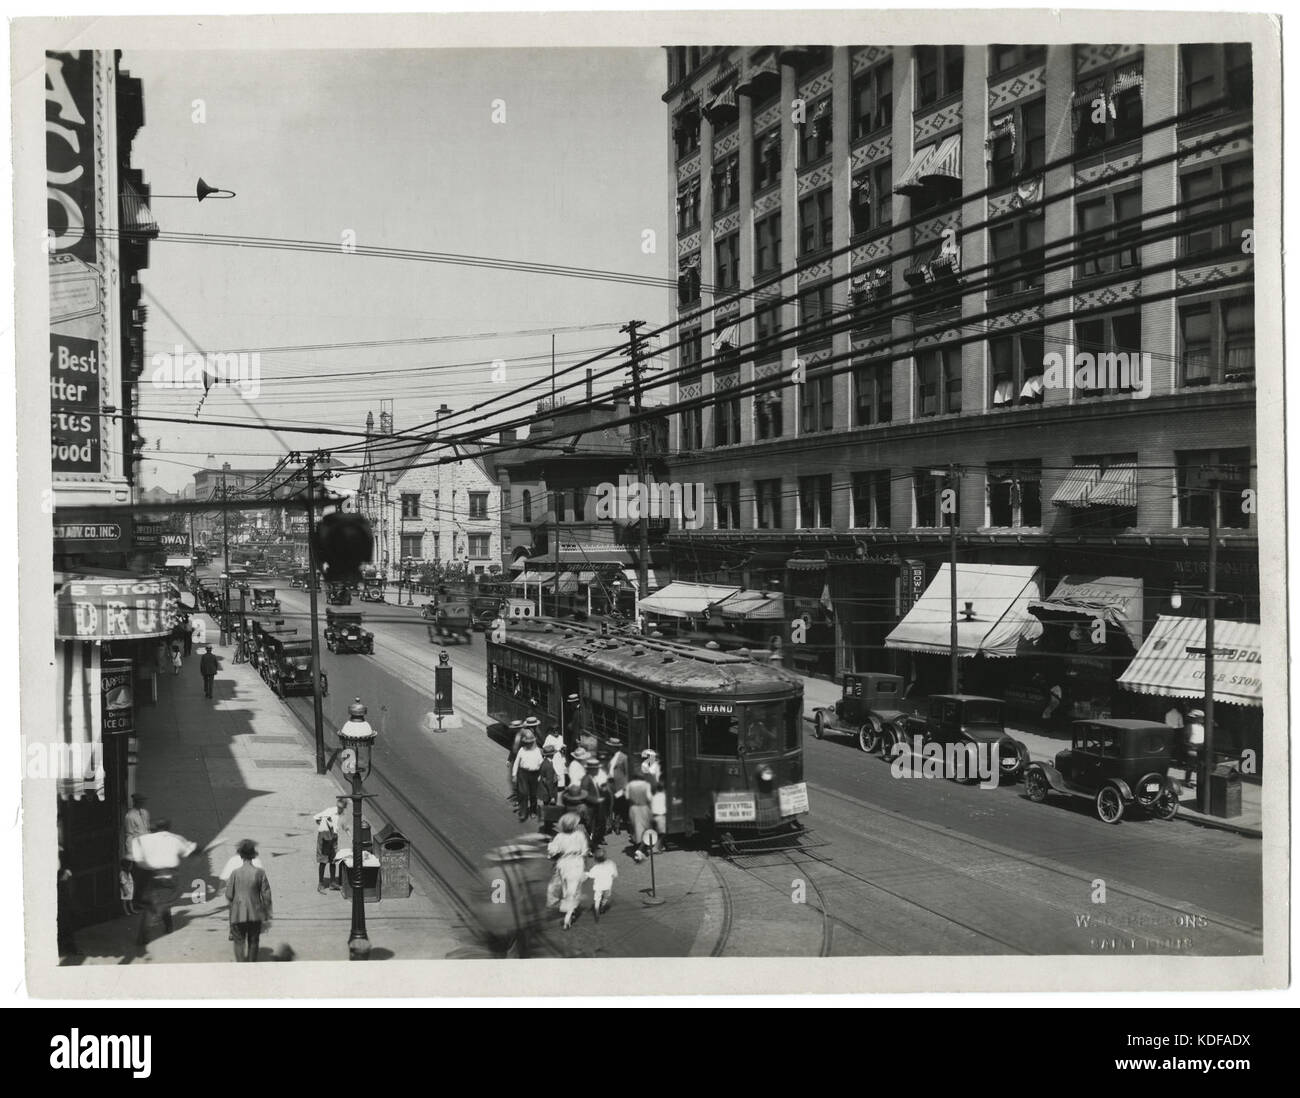 Passengers boarding and debarking from Grand Avenue Car No. 23, approaching Grand and Olive Stock Photo